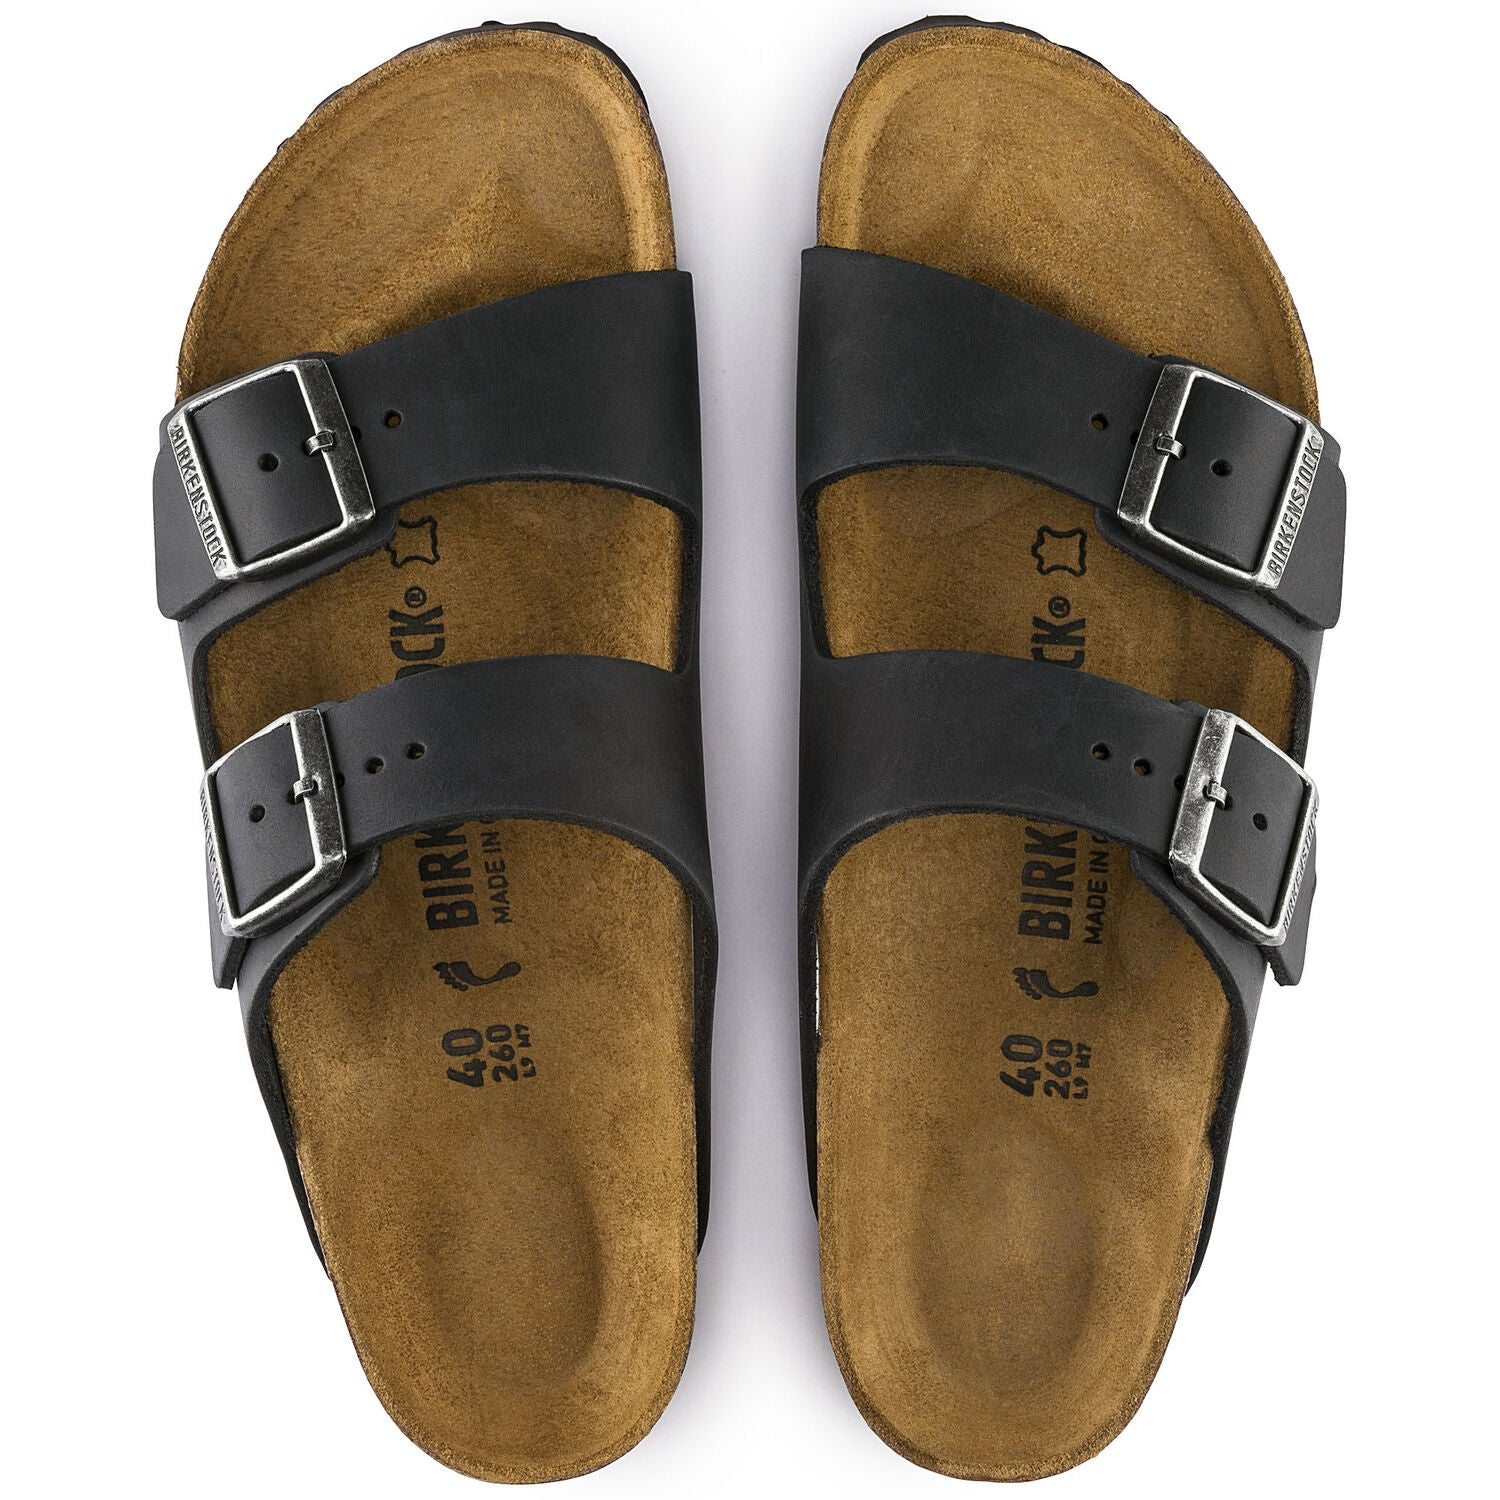 BIRKENSTOCK BIRKENSTOCK ARIZONA BLACK OILED LEATHER REGULAR getset-footwear.myshopify.com